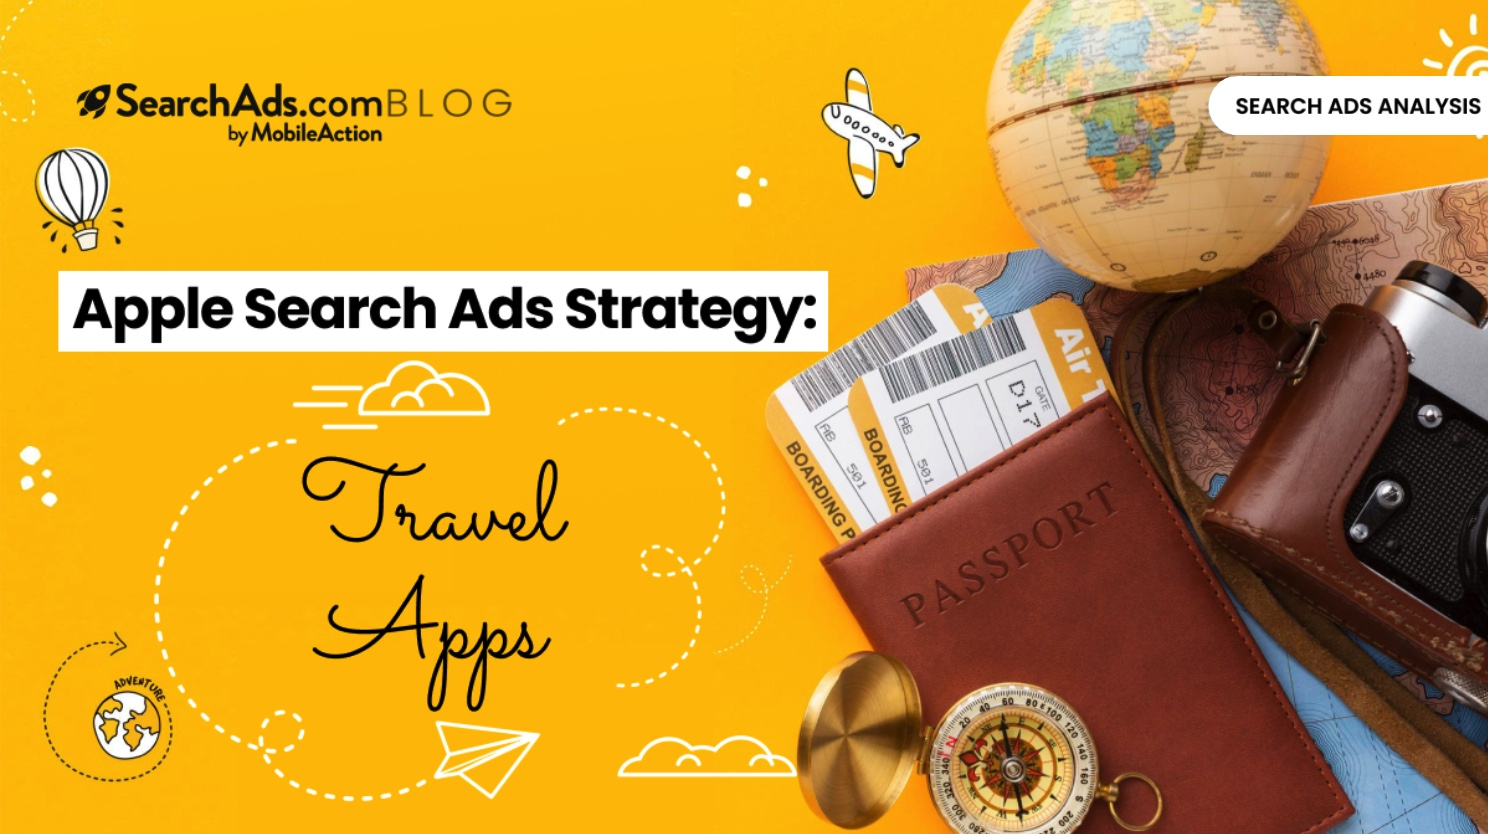 Search Ads strategy